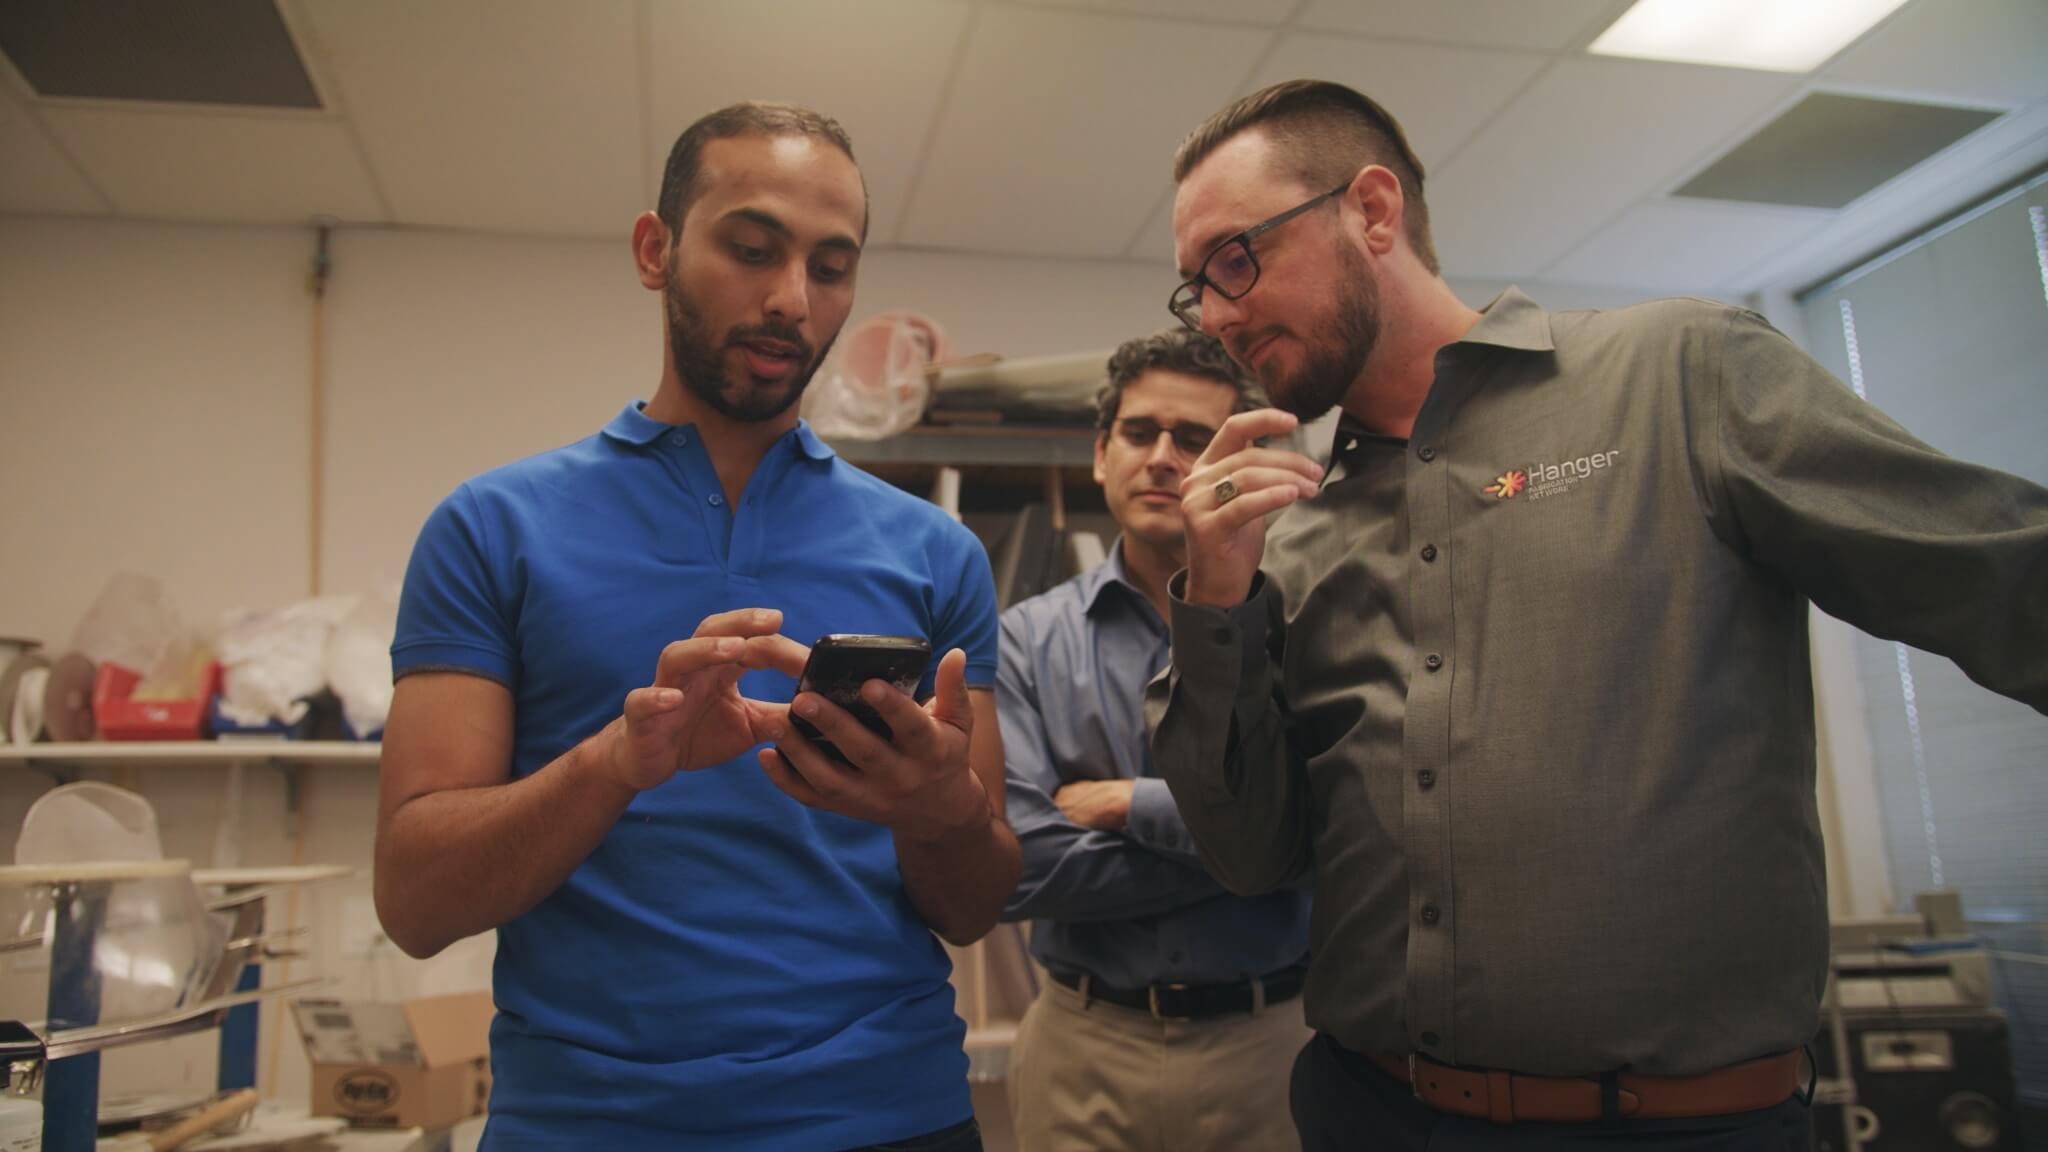 AT&T's Mohamed Elmahdy, left, shows Andrew Dibello, right, and Aaron Flores, center, the prototype mobile application.